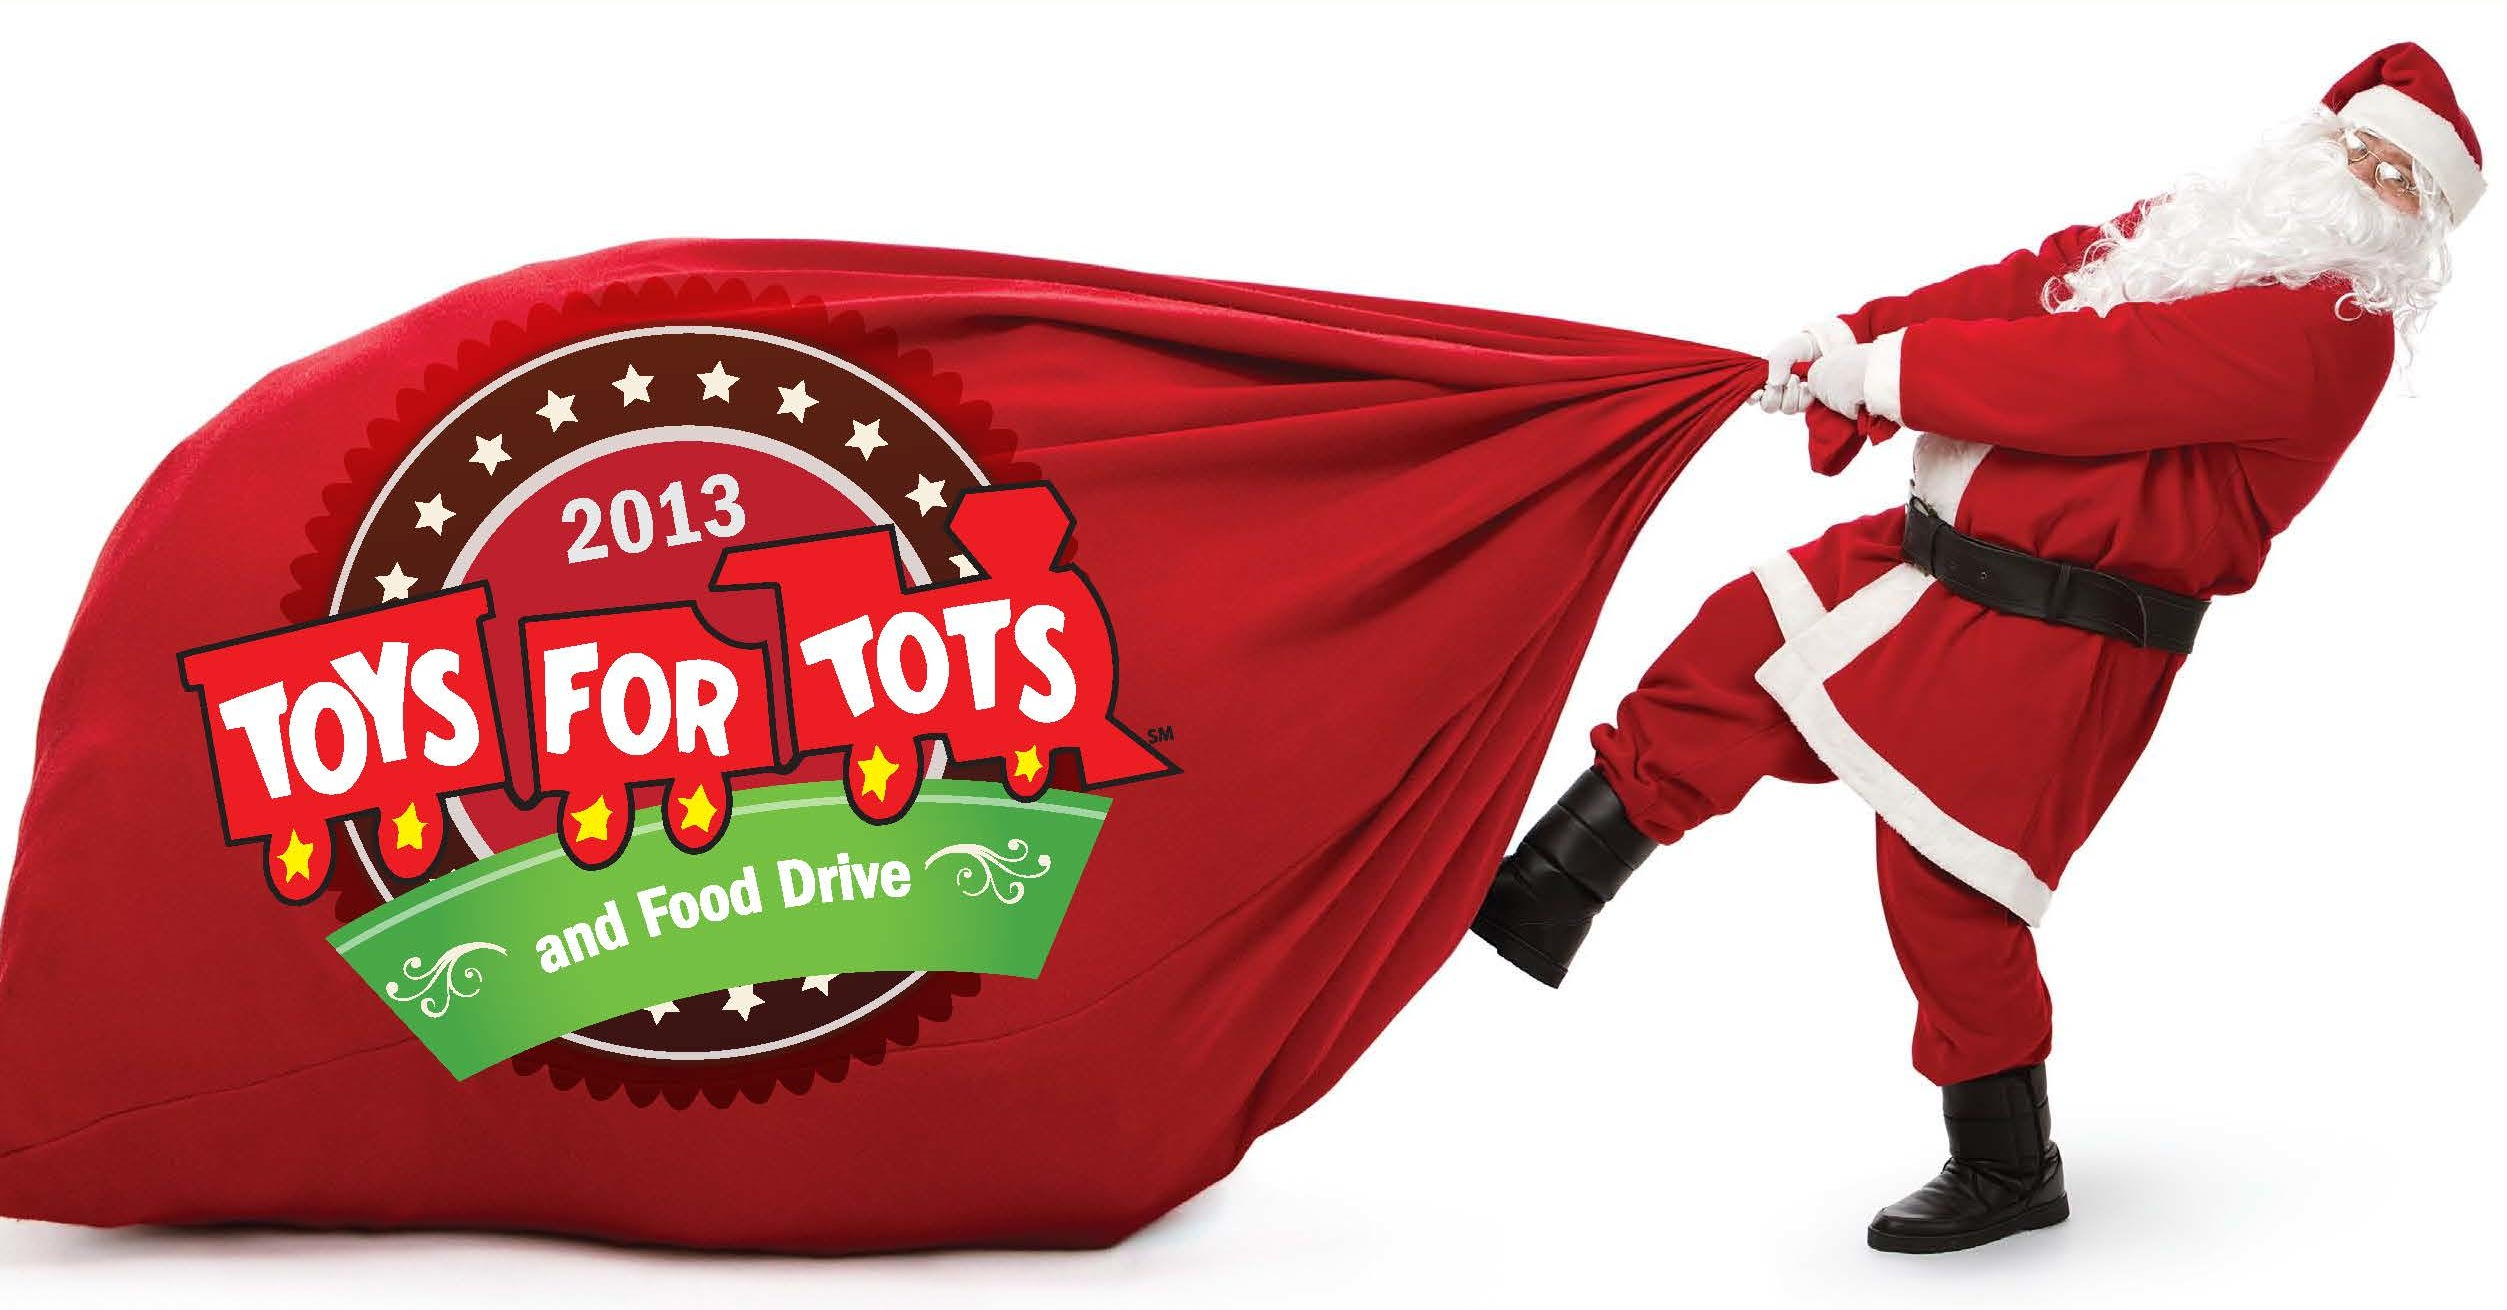 2013 Toys 4 Tots : Toys for tots